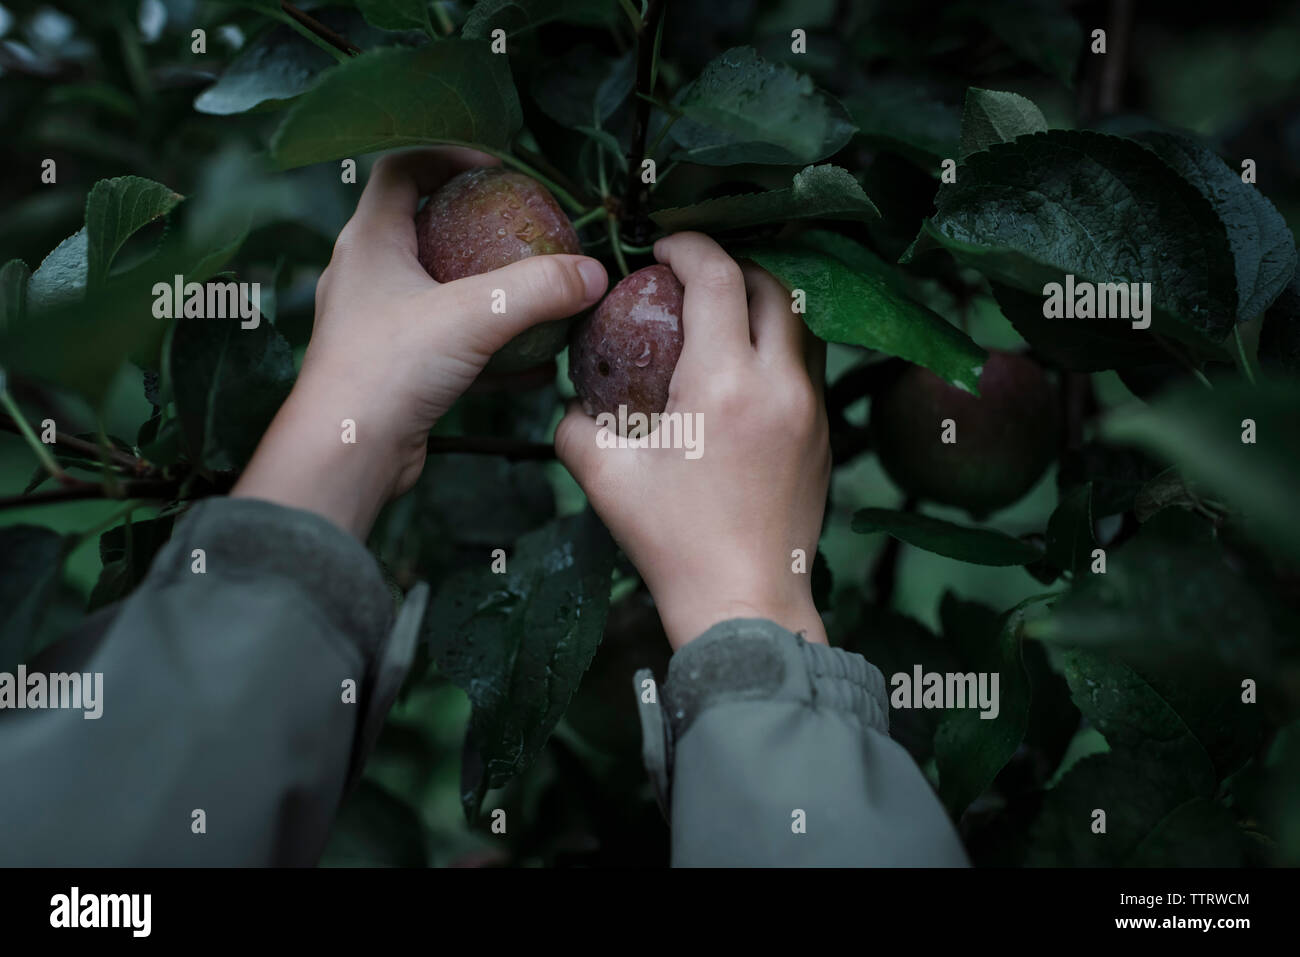 Cropped hands of boy picking fresh organic apples from fruit tree at orchard - Stock Image